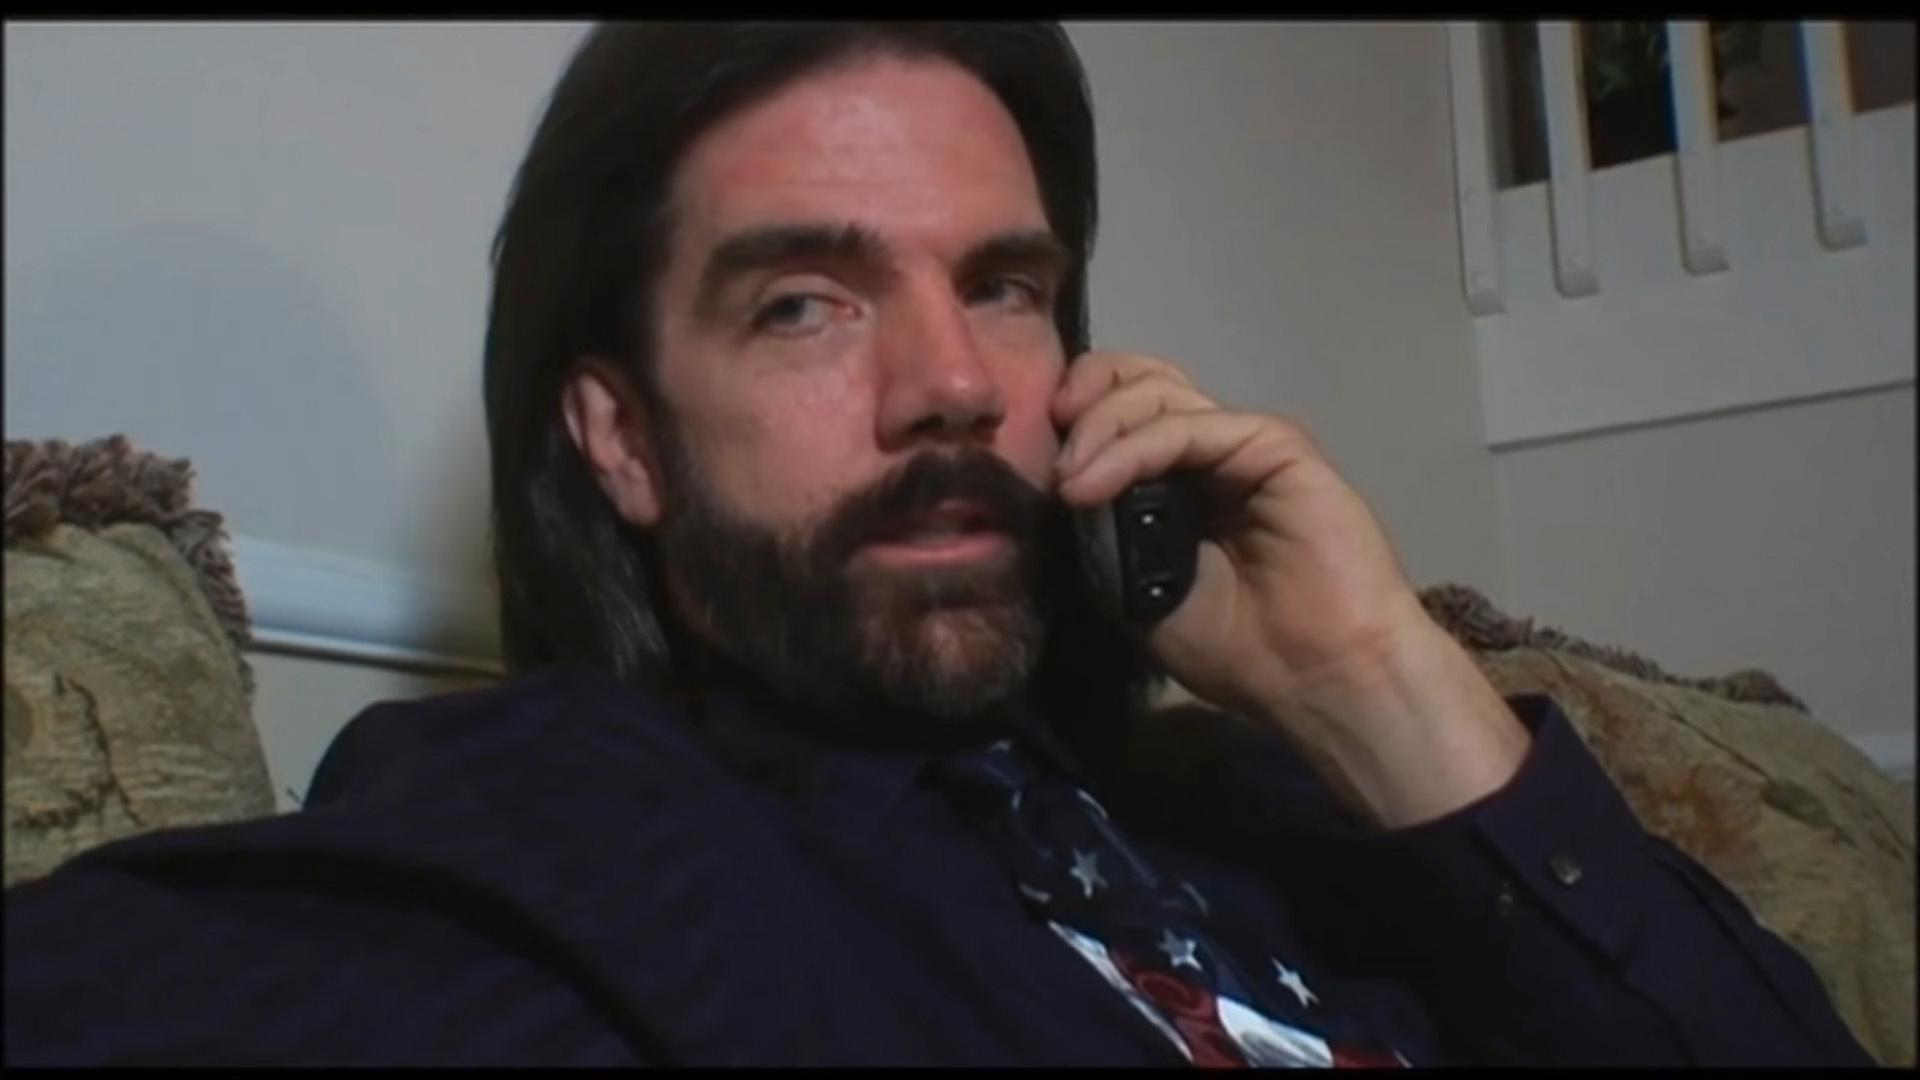 Donkey Kong-legenden Billy Mitchell anklages for juks